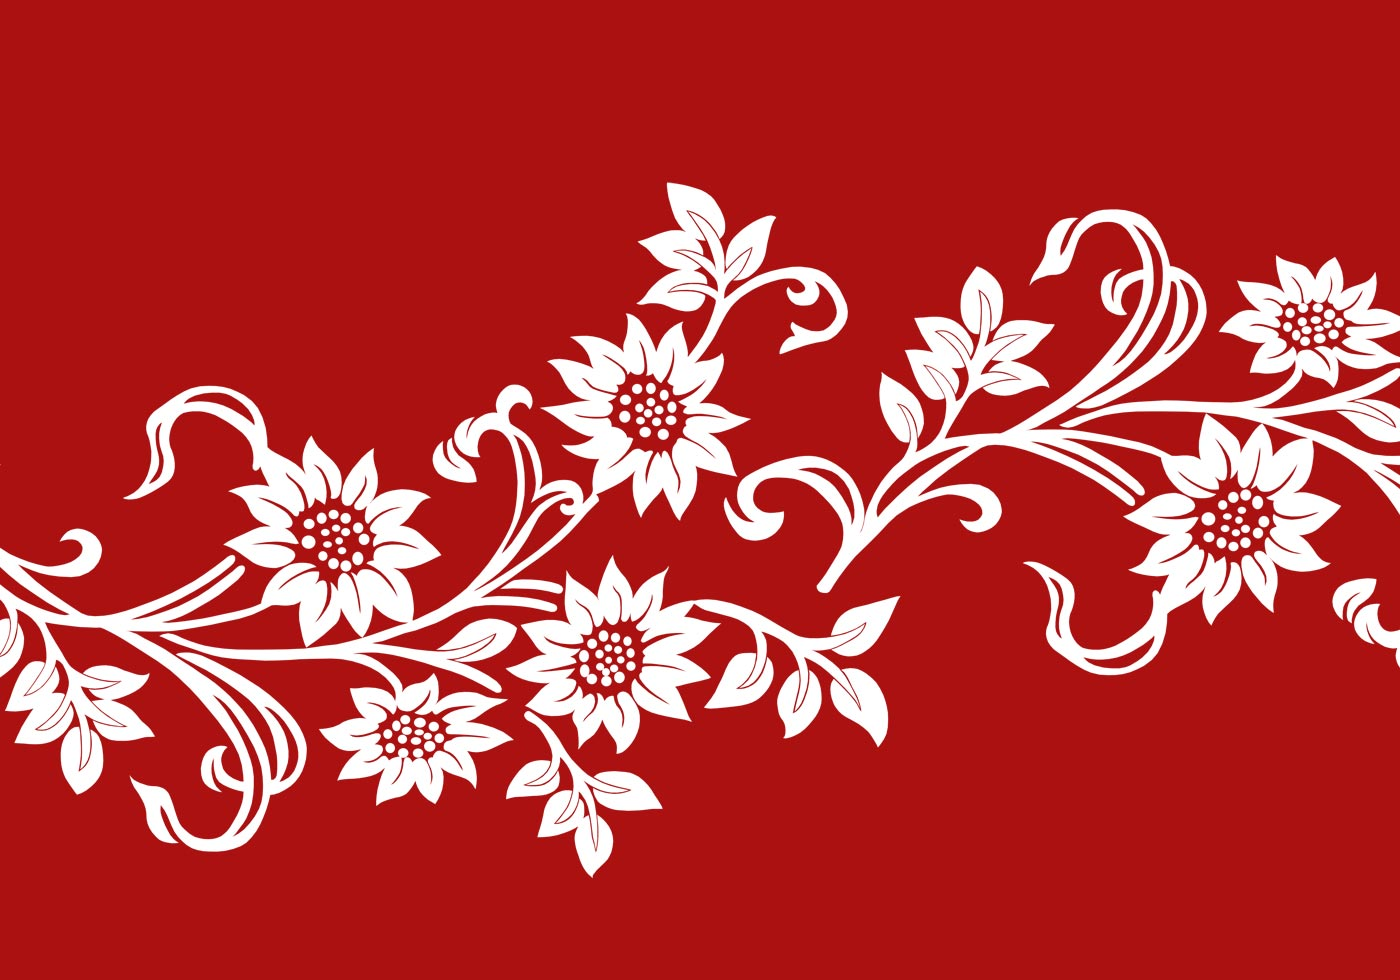 Flower Pattern Design Images